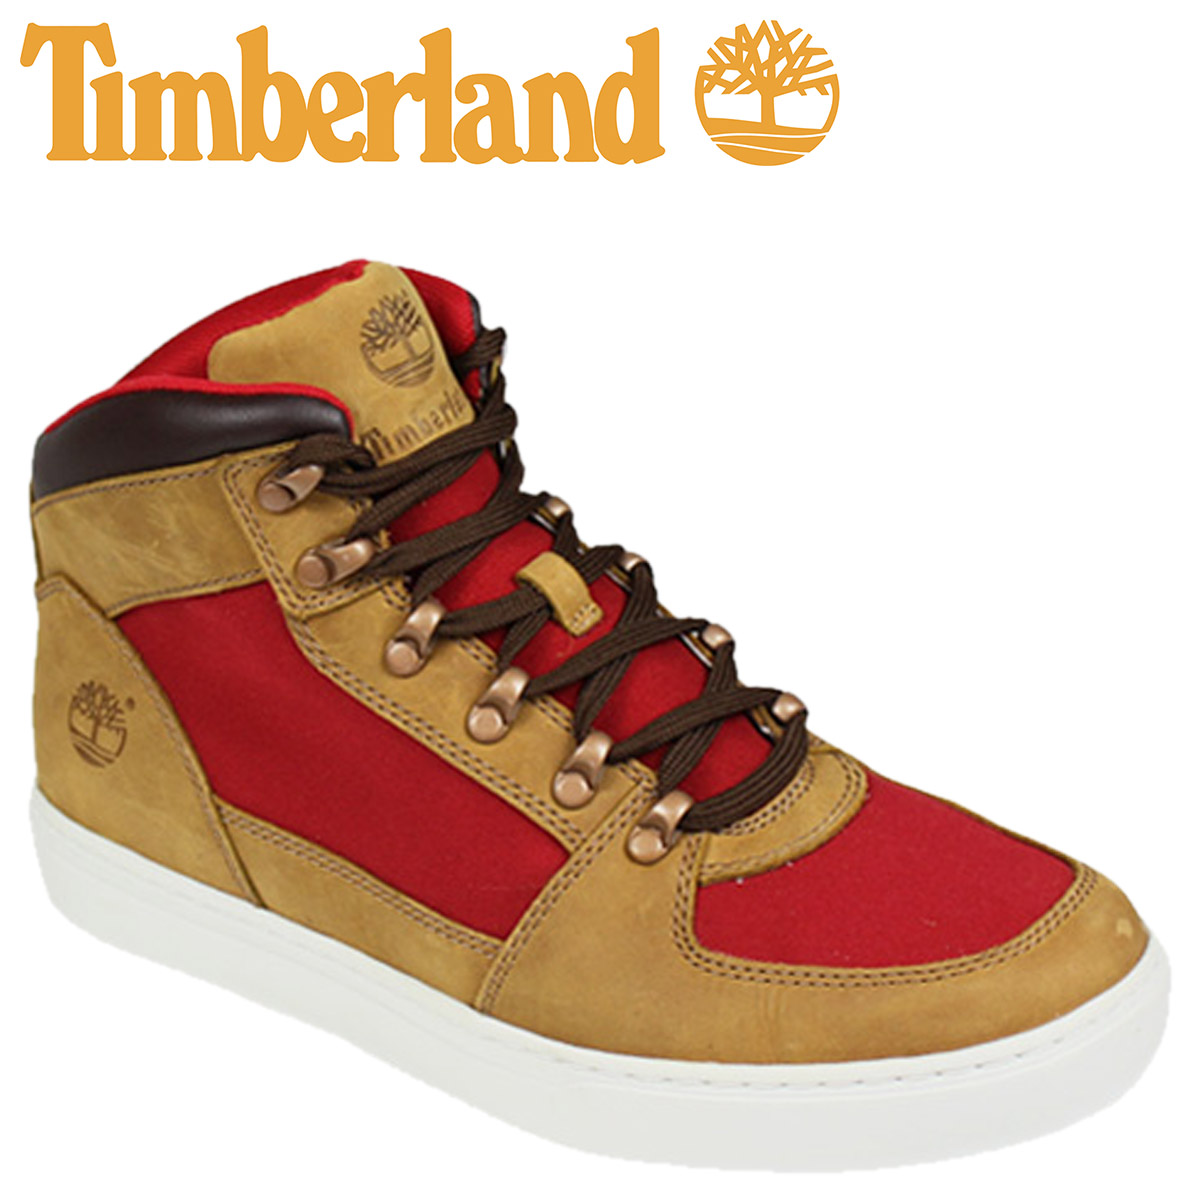 [SOLD OUT] Timberland Timberland Earthkeepers Newmarket 2.0 Cup hiker [Tan Red] EARTHKEEPERS NEW MARKET 2.0 CUP HIKER nubuck canvas men's 6862R [regular]